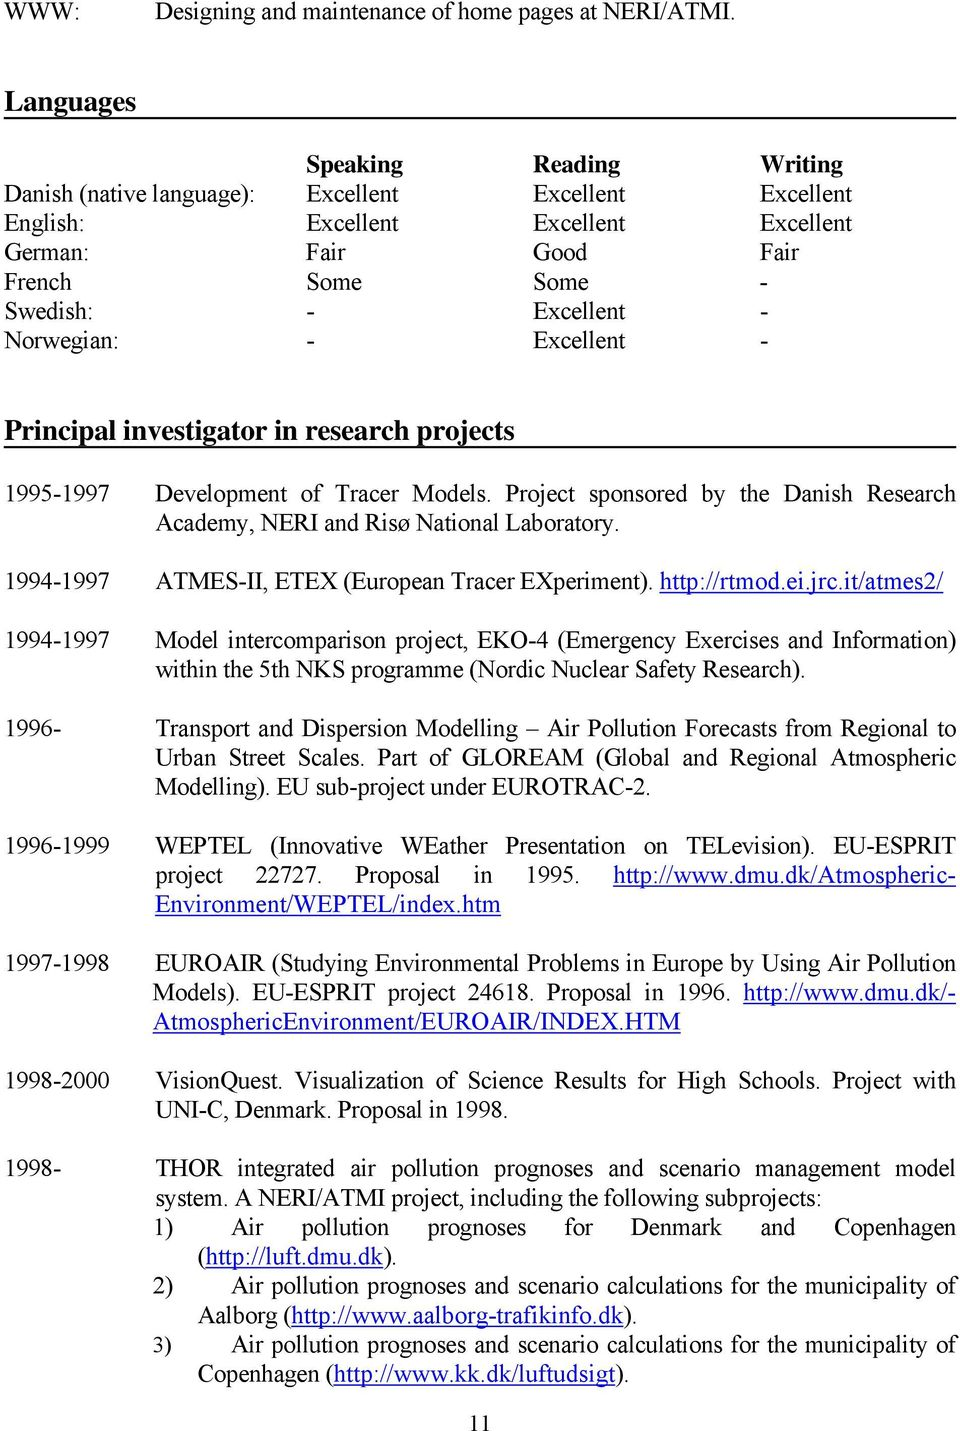 Norwegian: - Excellent - Principal investigator in research projects 1995-1997 Development of Tracer Models. Project sponsored by the Danish Research Academy, NERI and Risø National Laboratory.